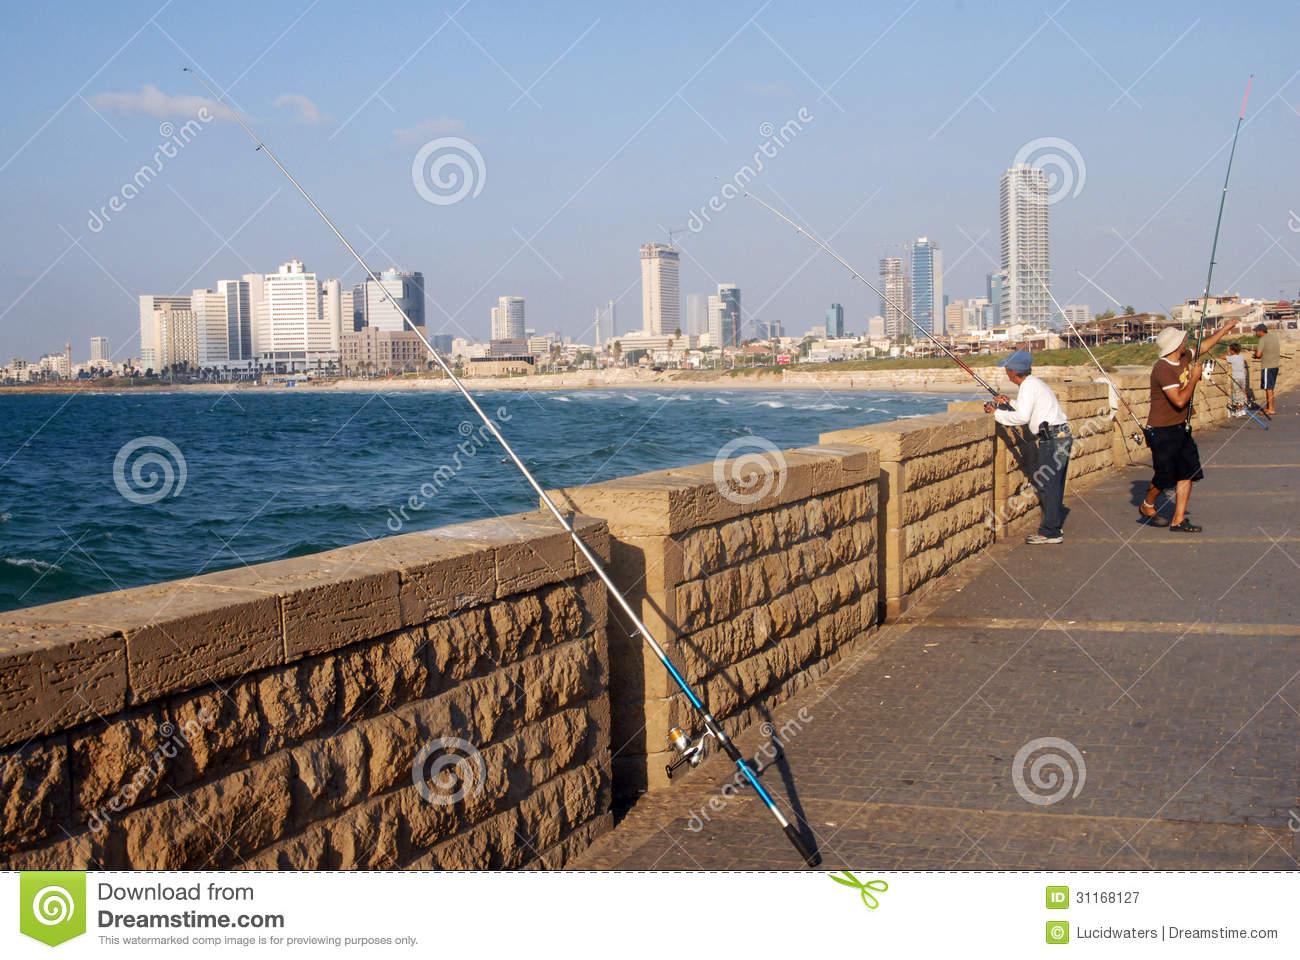 tel aviv single men An insider's guide to the best things to do in tel aviv,  do in tel aviv every single day i could watch the tel aviv sunsets for  the old man and.